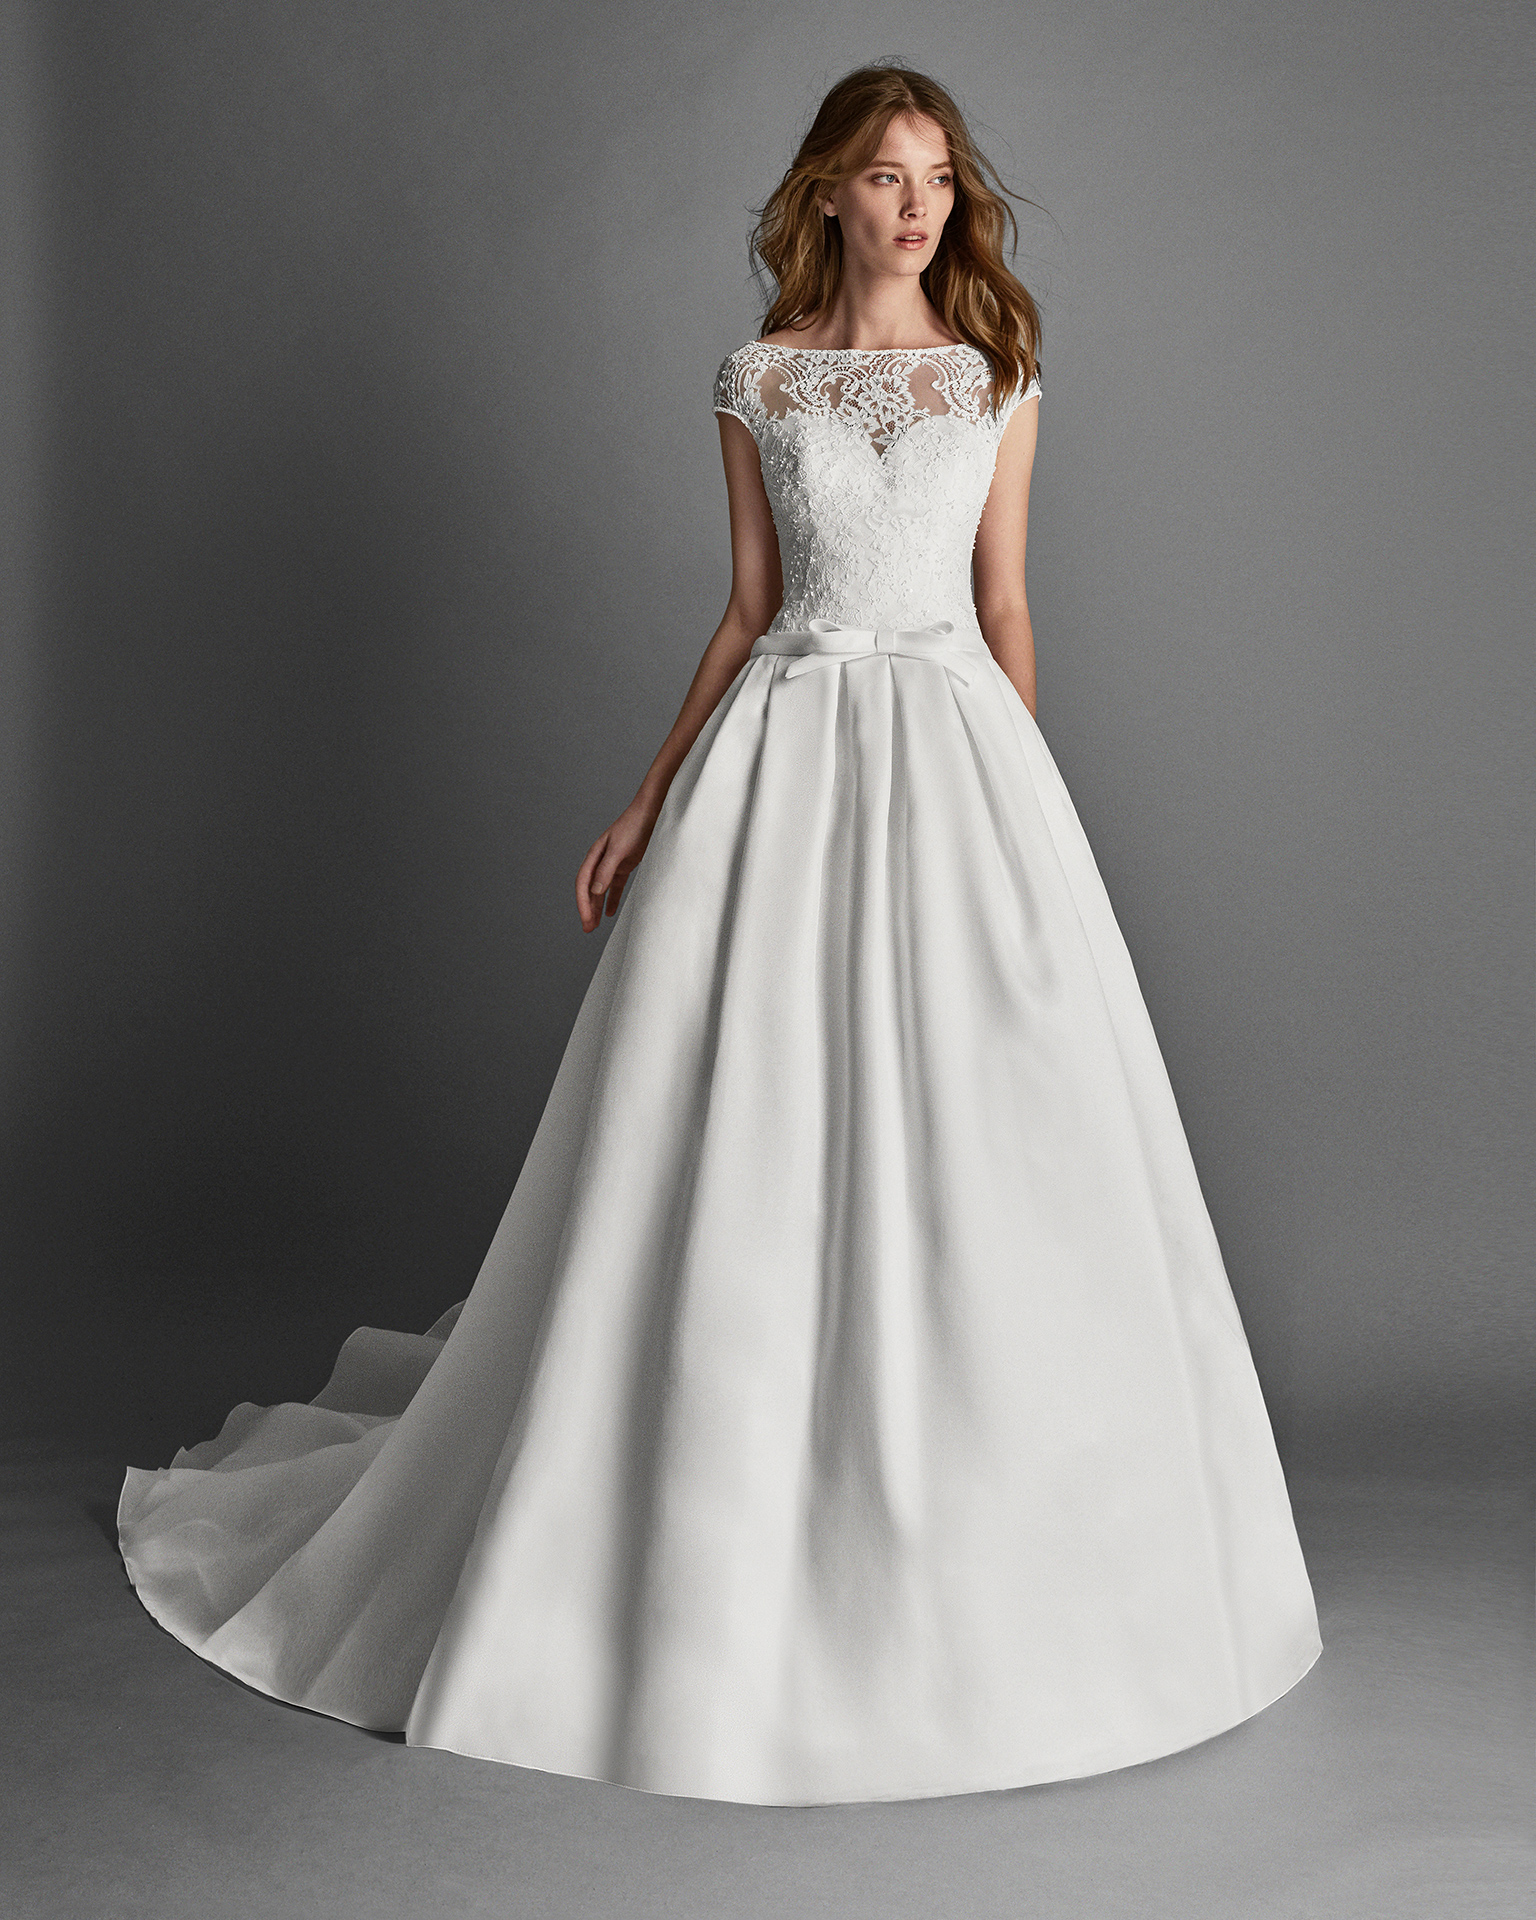 Classic-style beaded lace and organza wedding dress with short sleeves and low back.